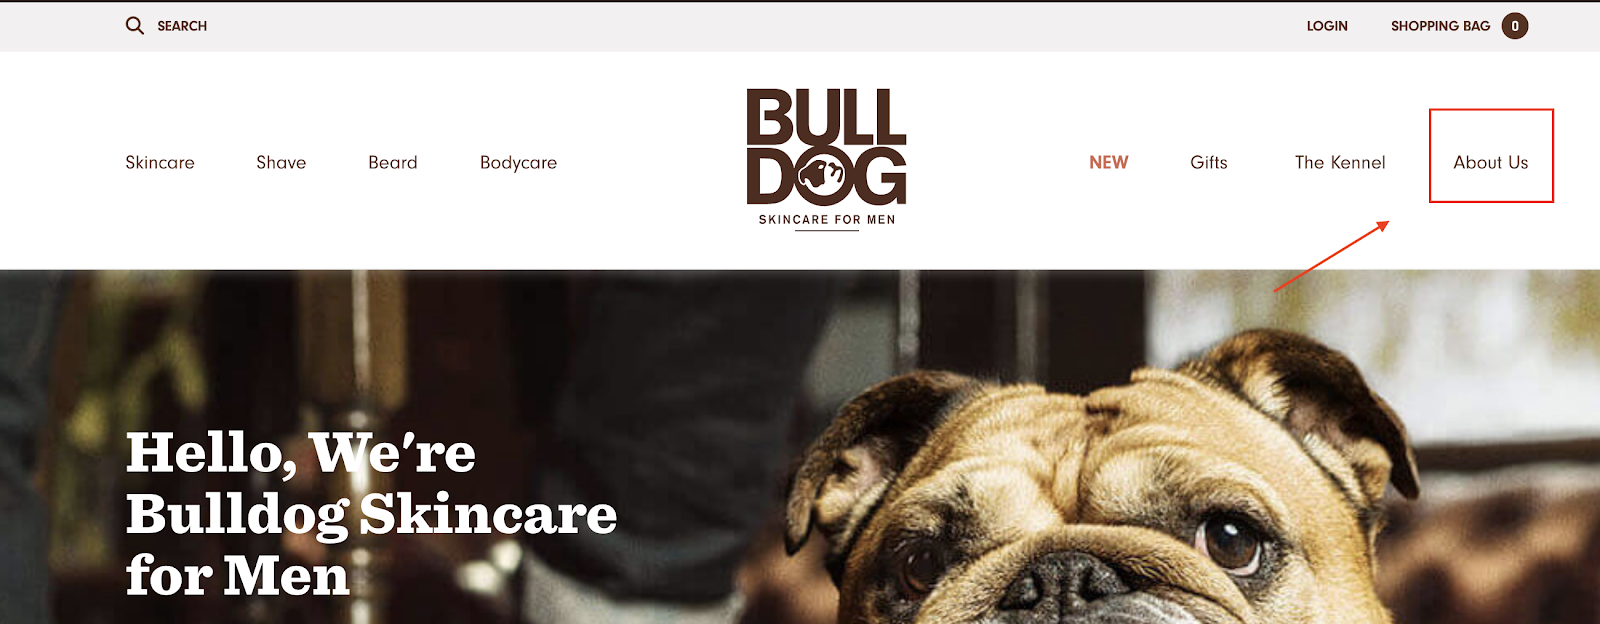 Bulldog Skincare about page